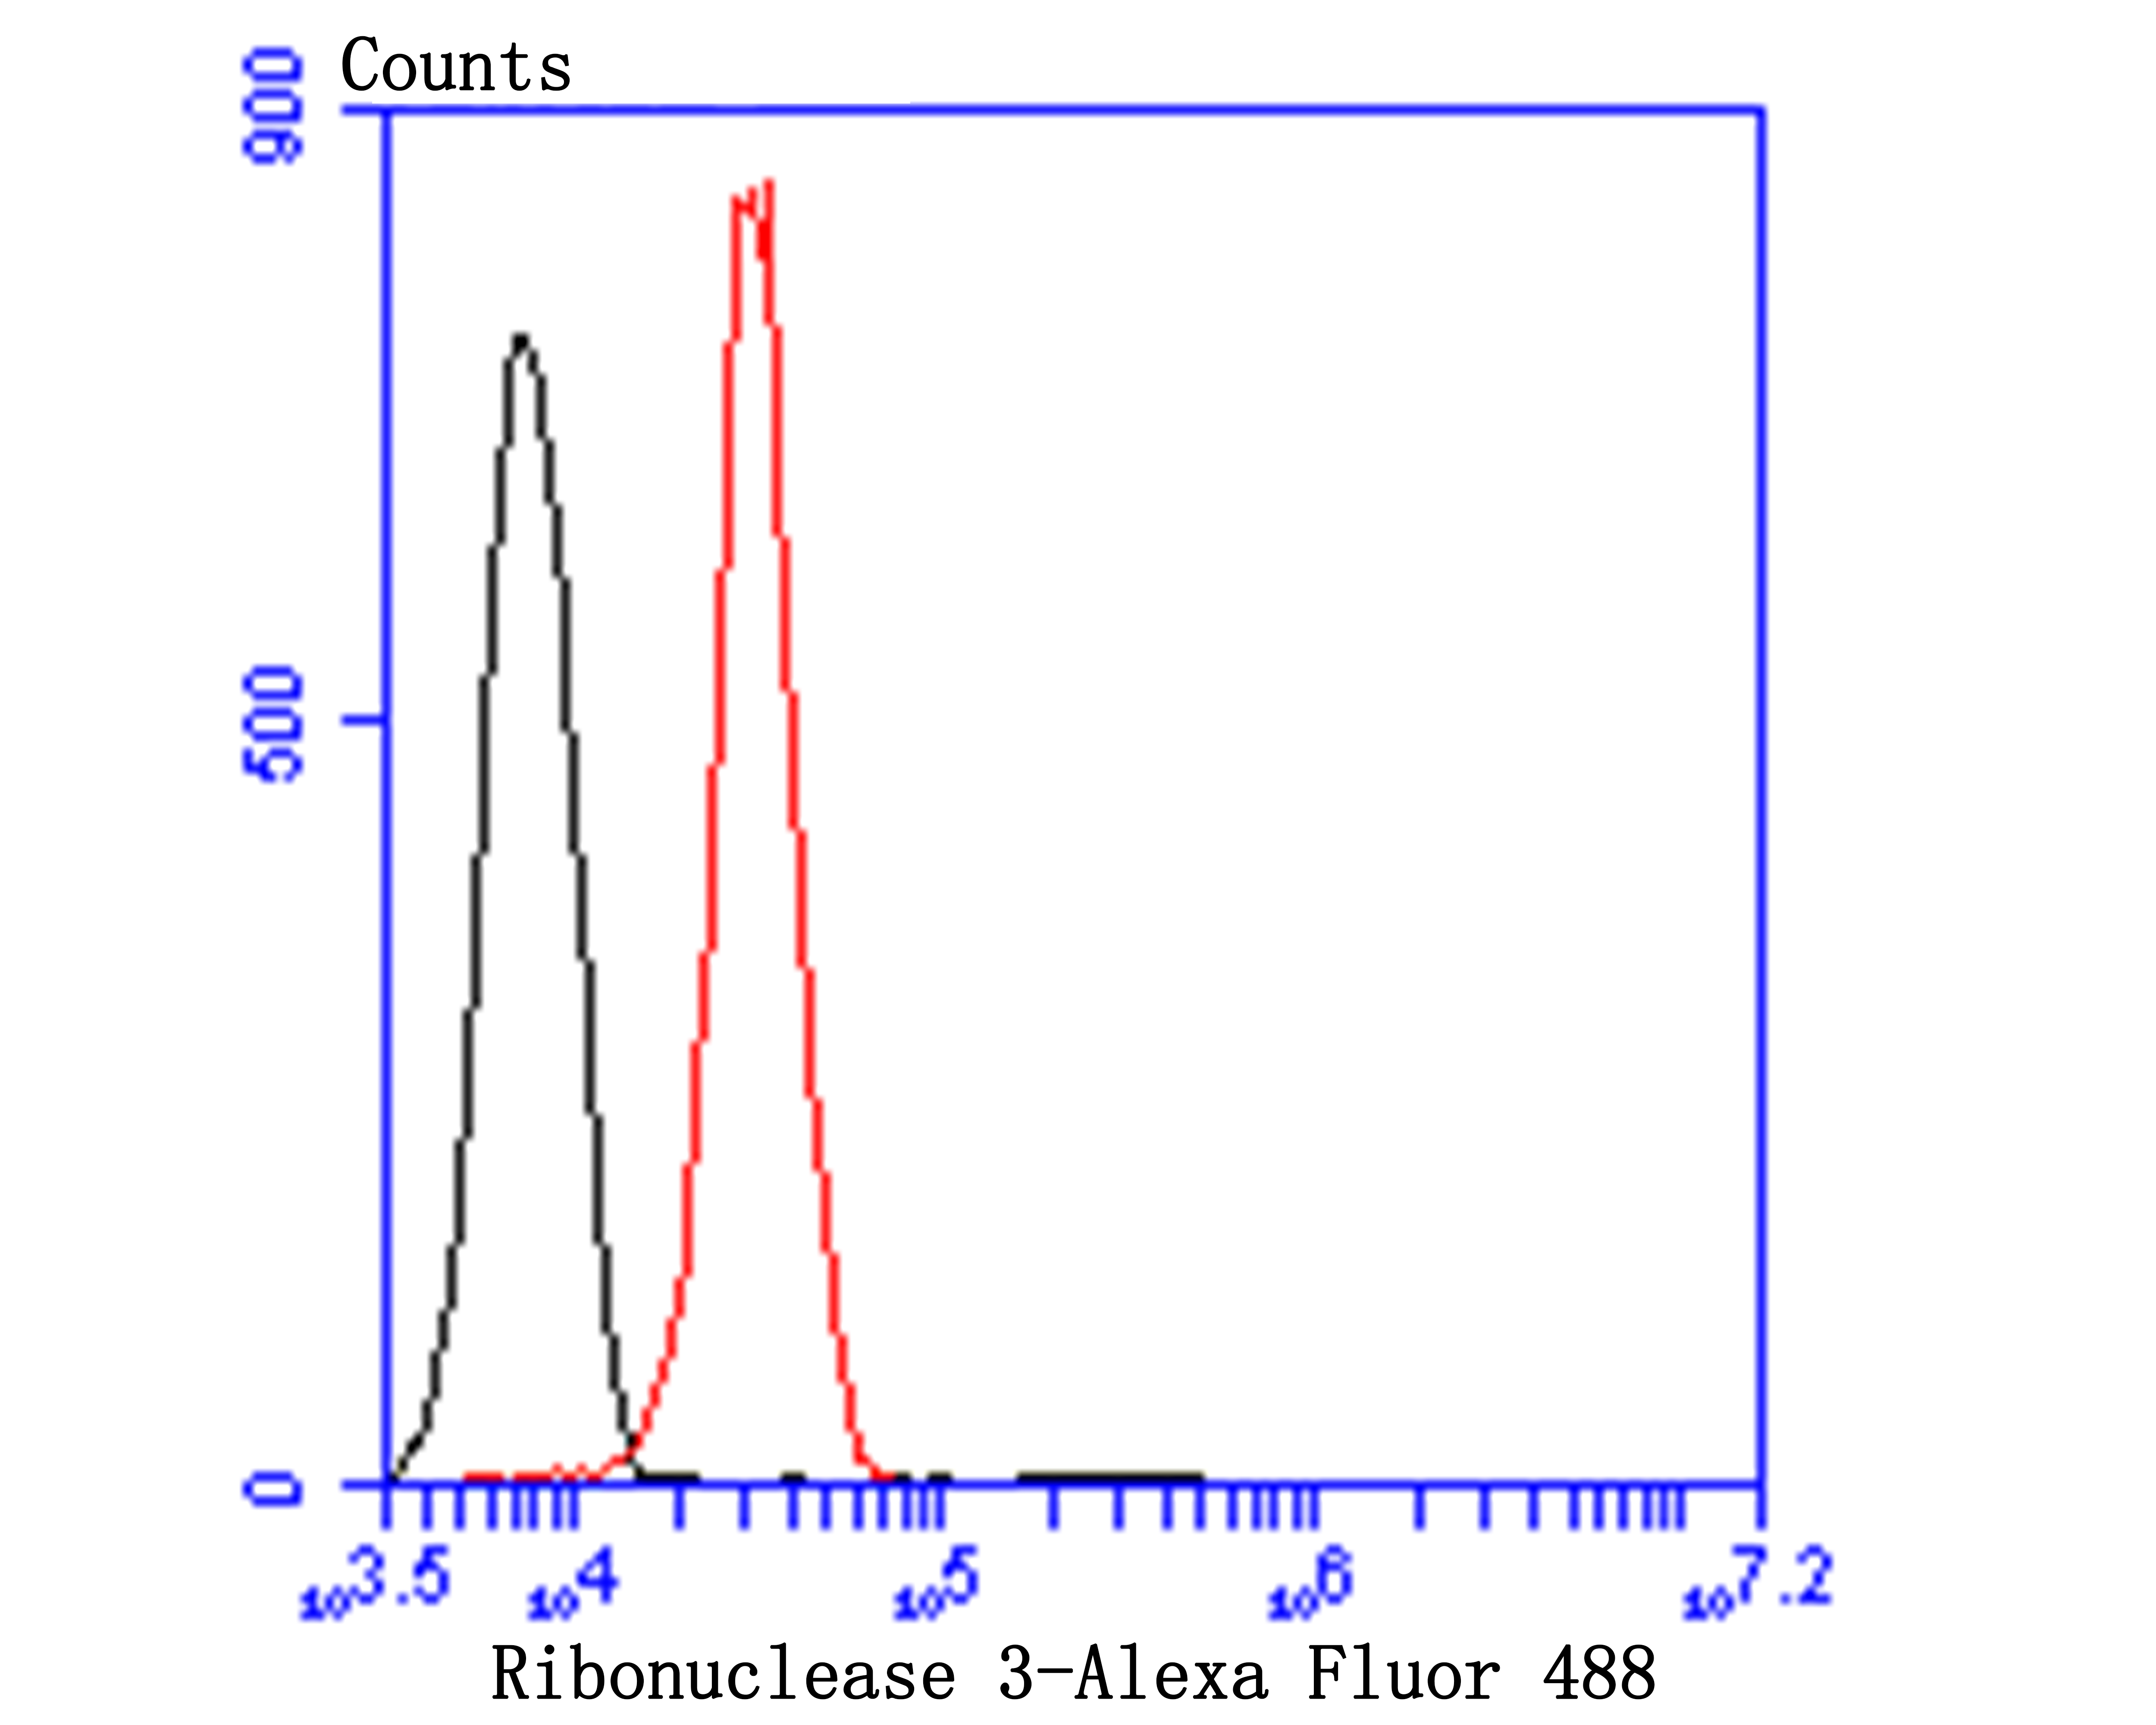 Flow cytometric analysis of Ribonuclease 3 was done on Hela cells. The cells were fixed, permeabilized and stained with Ribonuclease 3 antibody at 1/100 dilution (red) compared with an unlabelled control (cells without incubation with primary antibody; black). After incubation of the primary antibody on room temperature for an hour, the cells was stained with a Alexa Fluor™ 488-conjugated goat anti-Mouse IgG Secondary antibody at 1/500 dilution for 30 minutes.